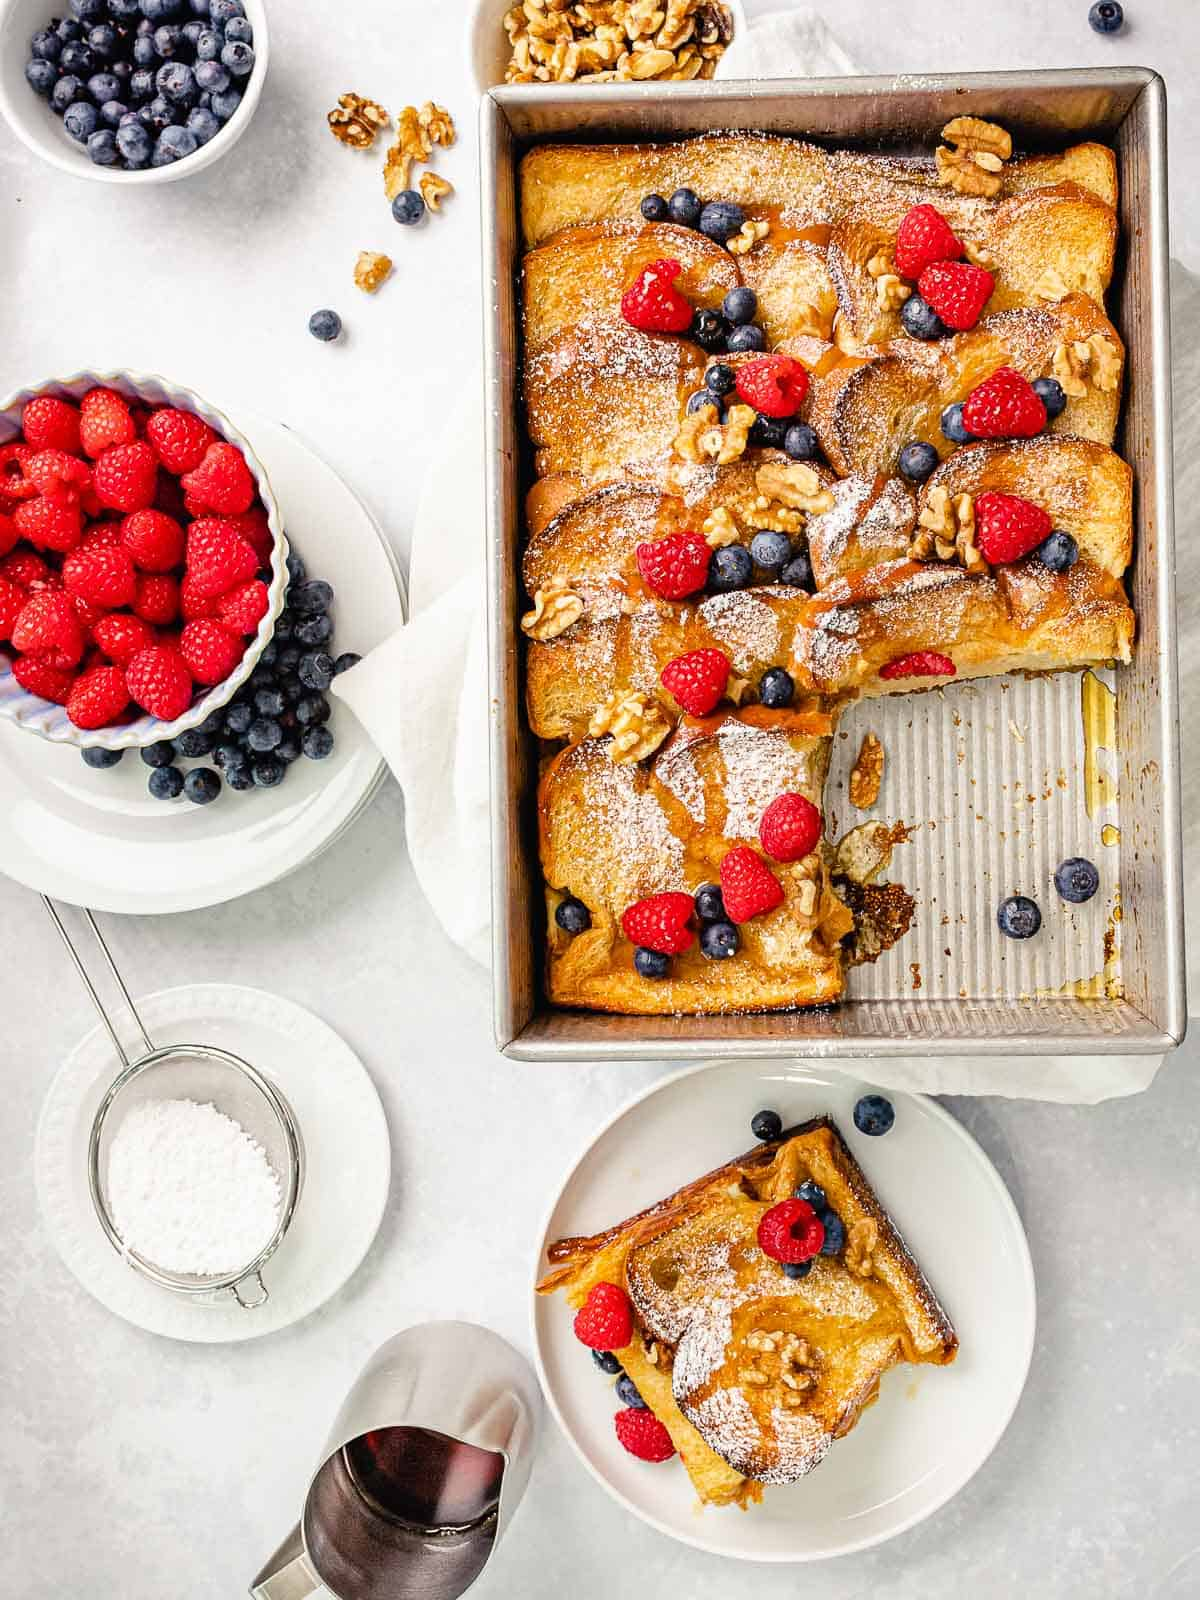 Baked french toast in a baking pan with golden brown crispy crust topped with blueberries, raspberries, nuts, and maple syrup.